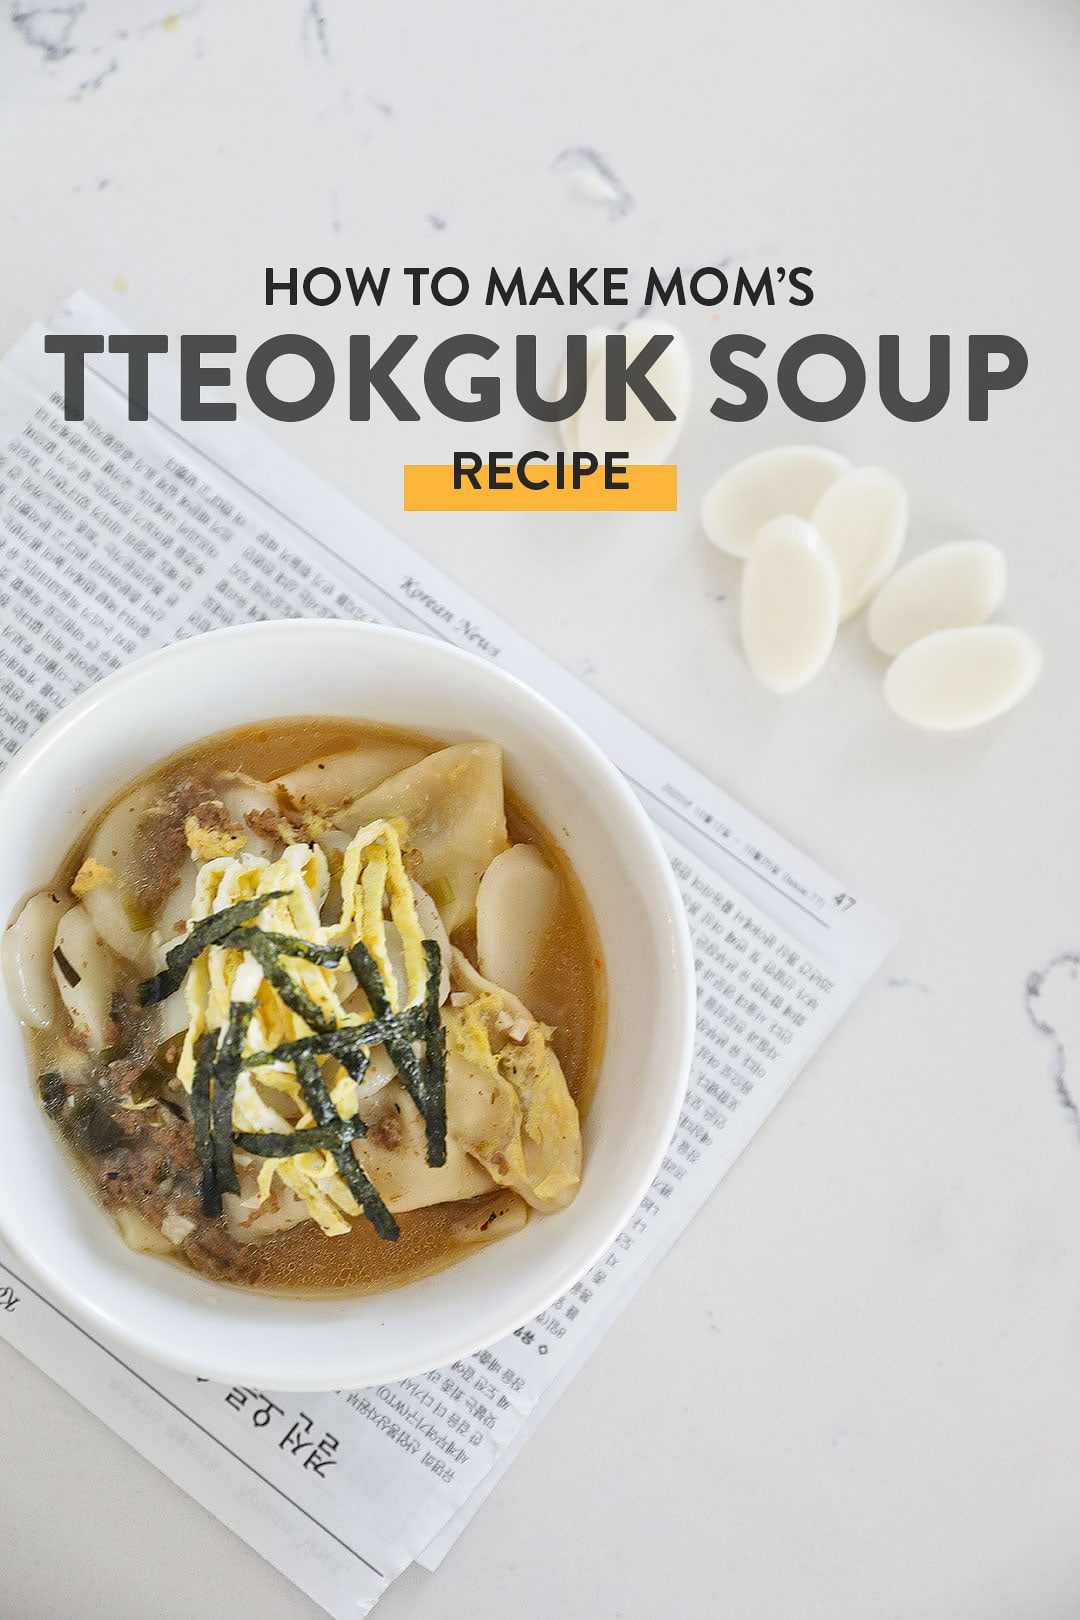 How to Make Mom's Tteokguk Recipe - Korean Rice Cake Soup